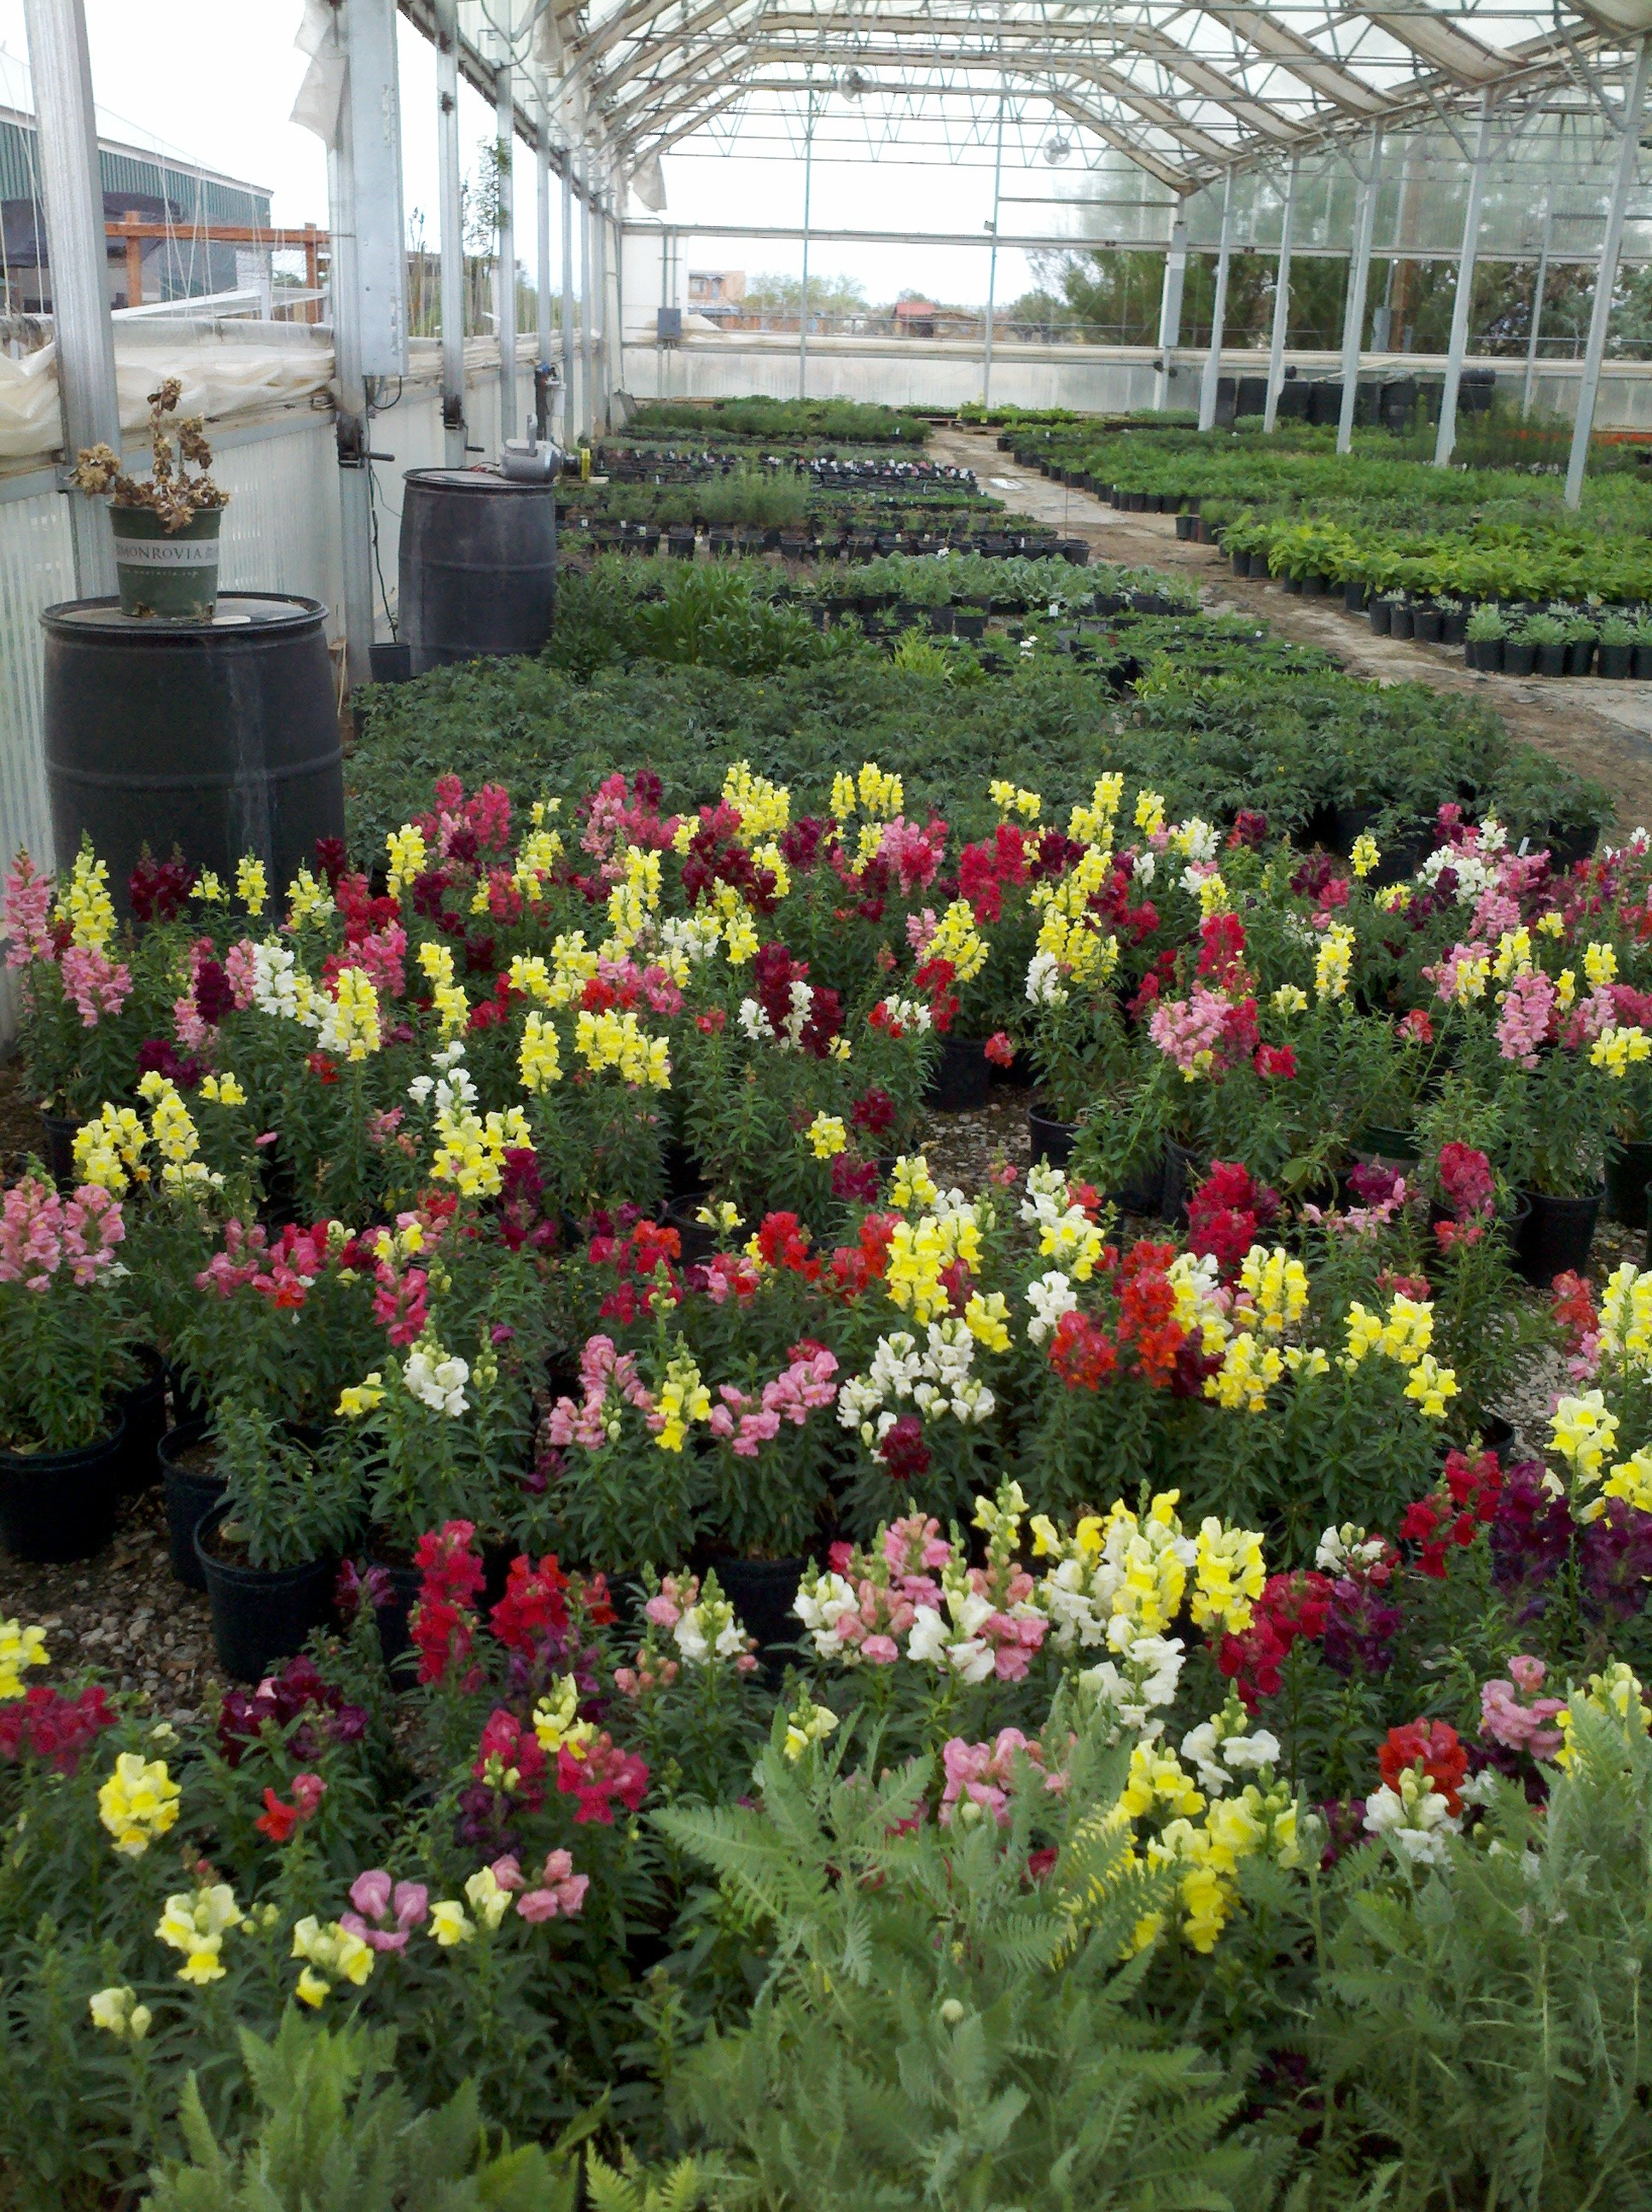 Barela Farms/ Kare-N-Growing Greenhouse